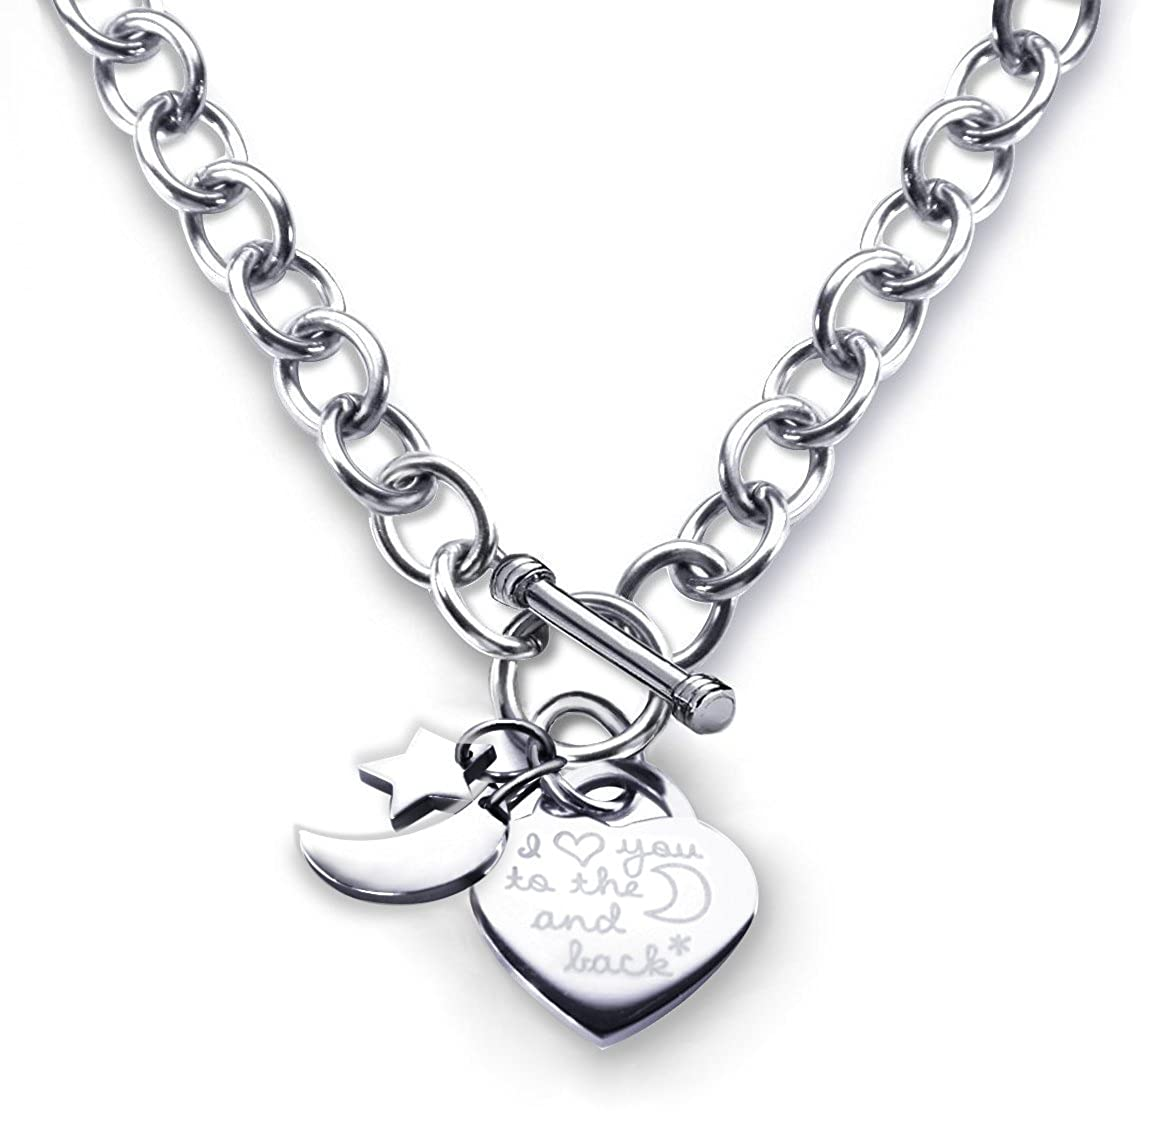 1ec4eb2378b Heart Toggle Necklace I Love You to the Moon and Back Charm Stainless Steel  18